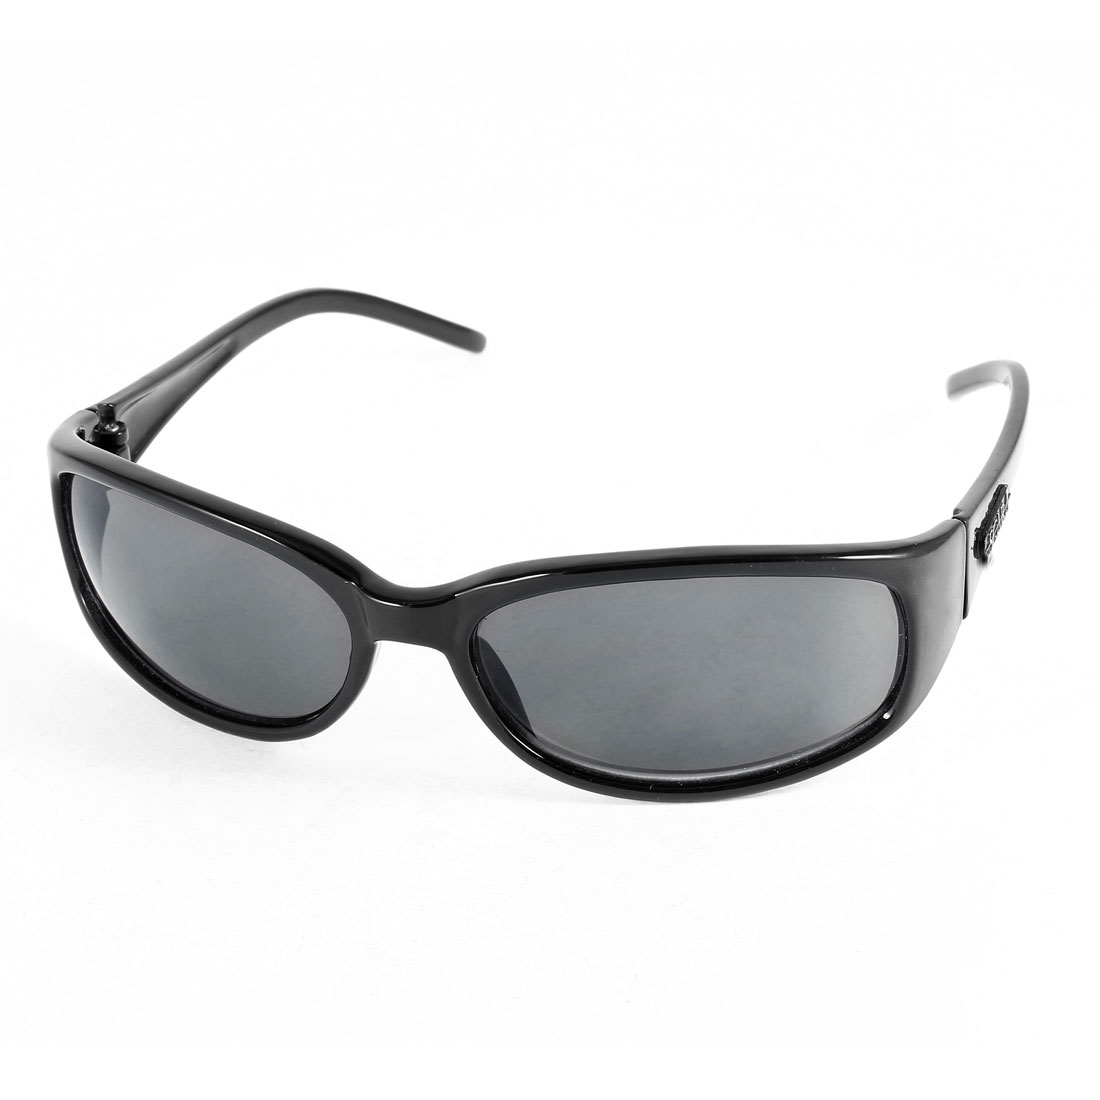 Black Plastic Full Rimmed Tinted Lens Sunglasses Glasses for Men